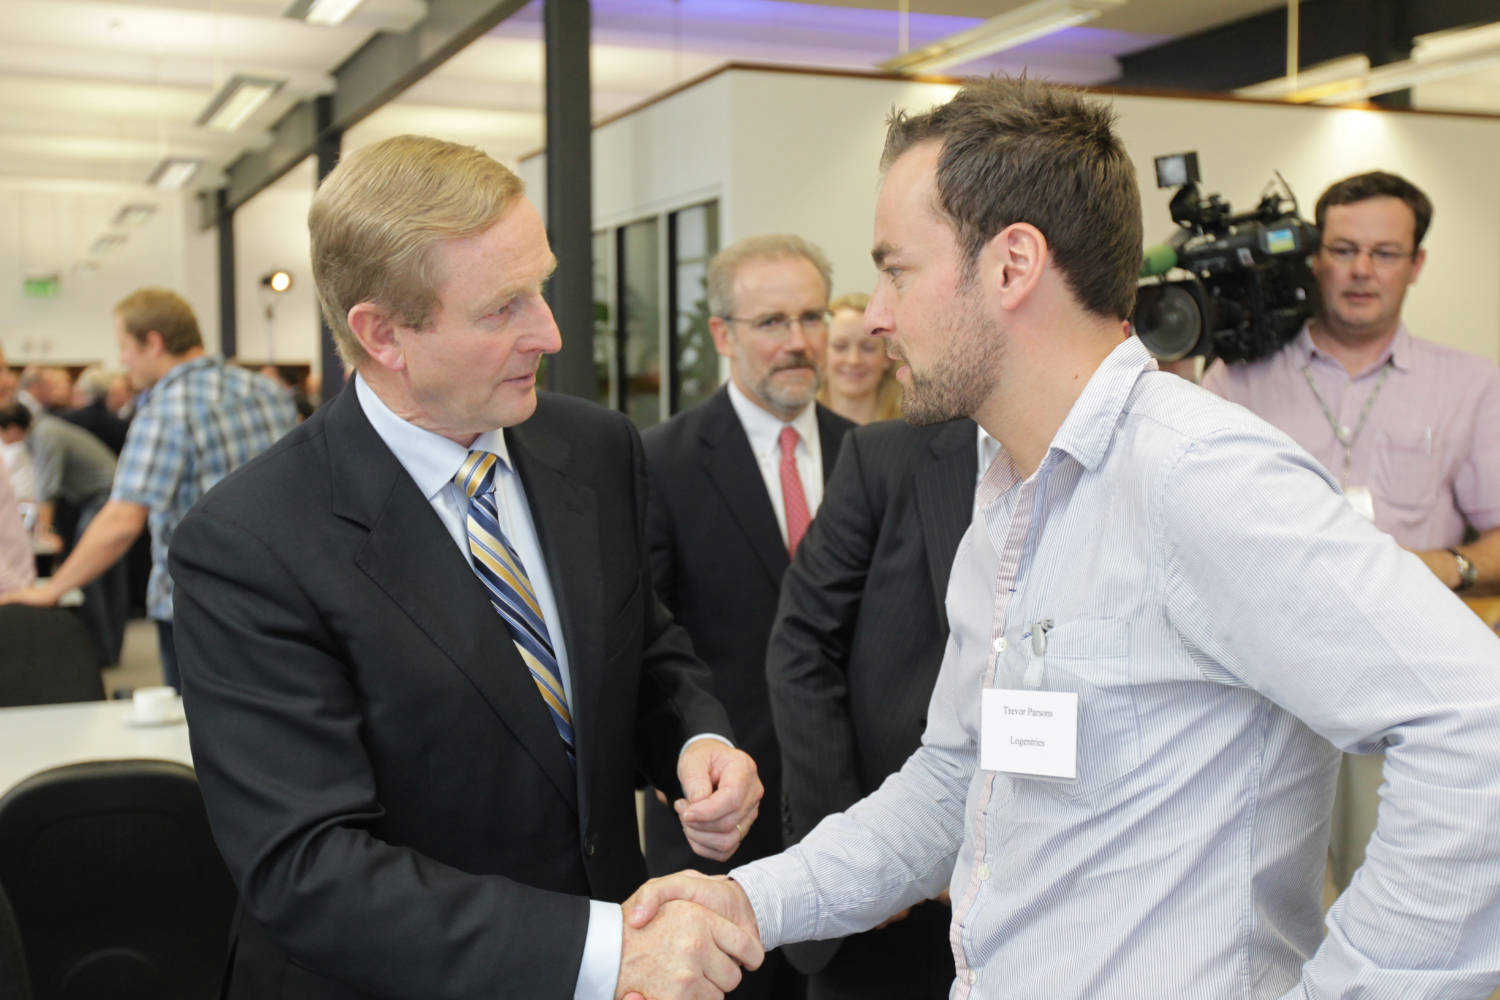 Enda Kenny with the Logentries Team